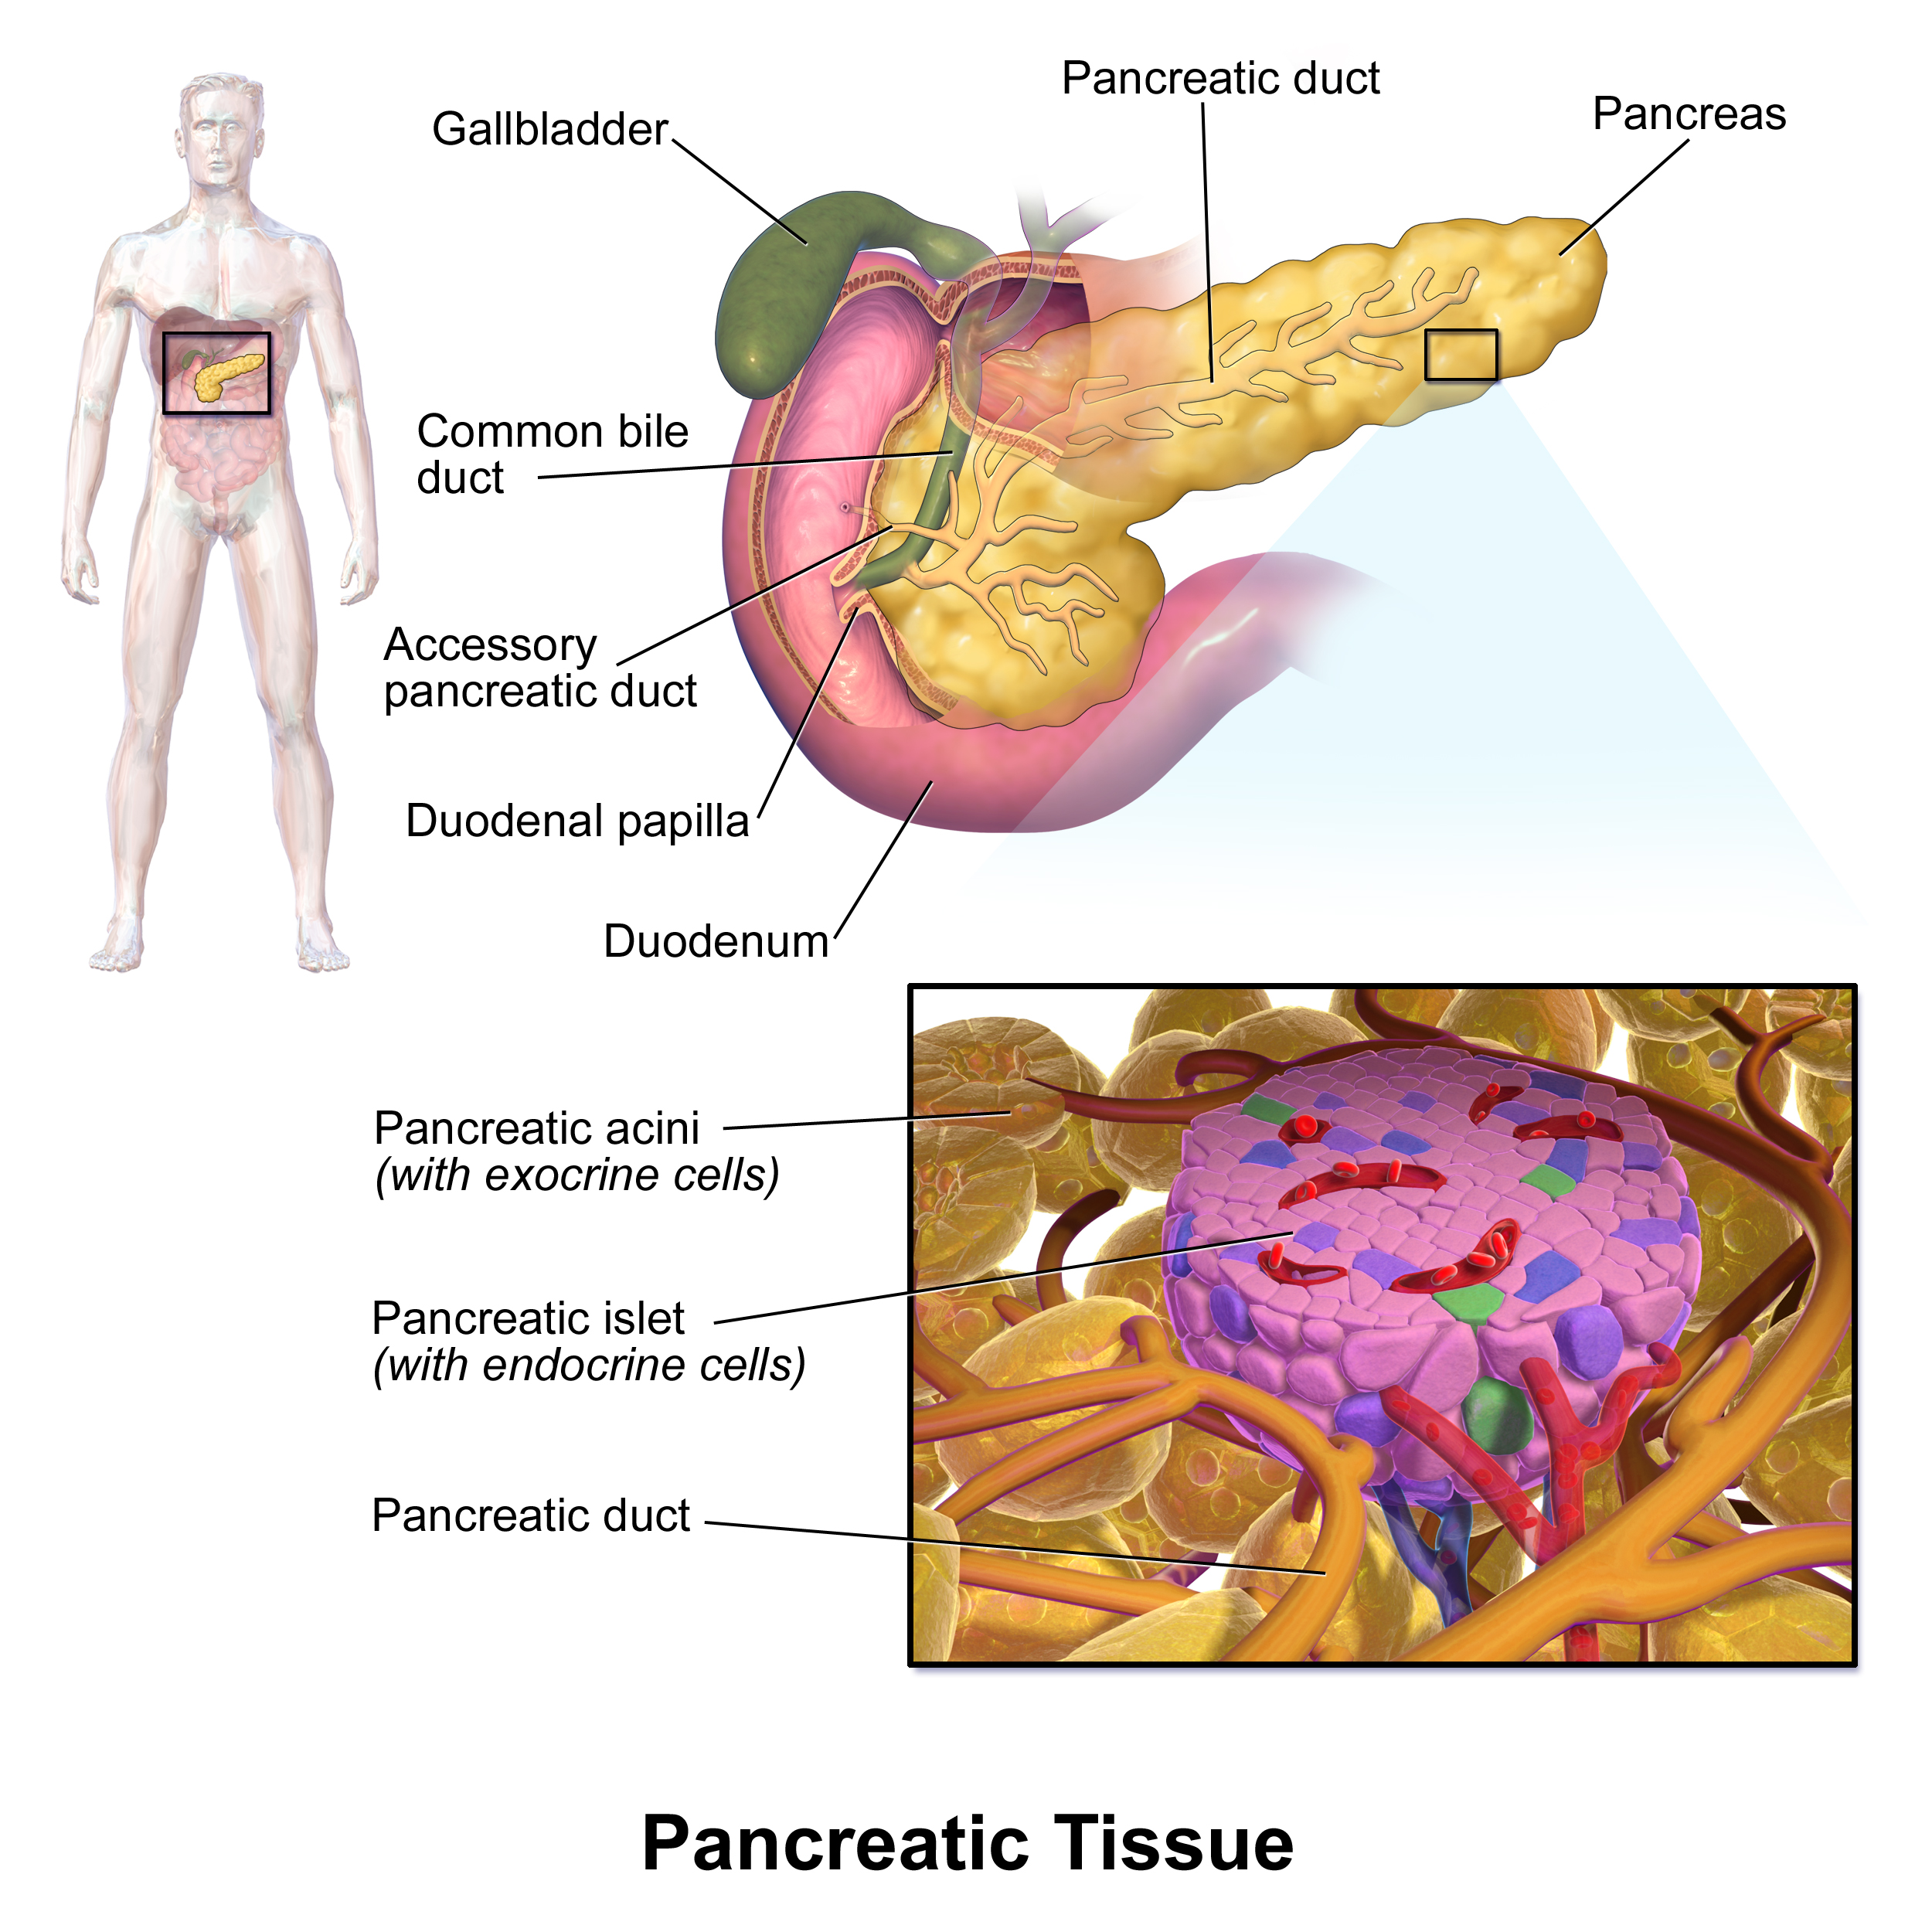 File Blausen 0701 PancreaticTissue on pancreus location